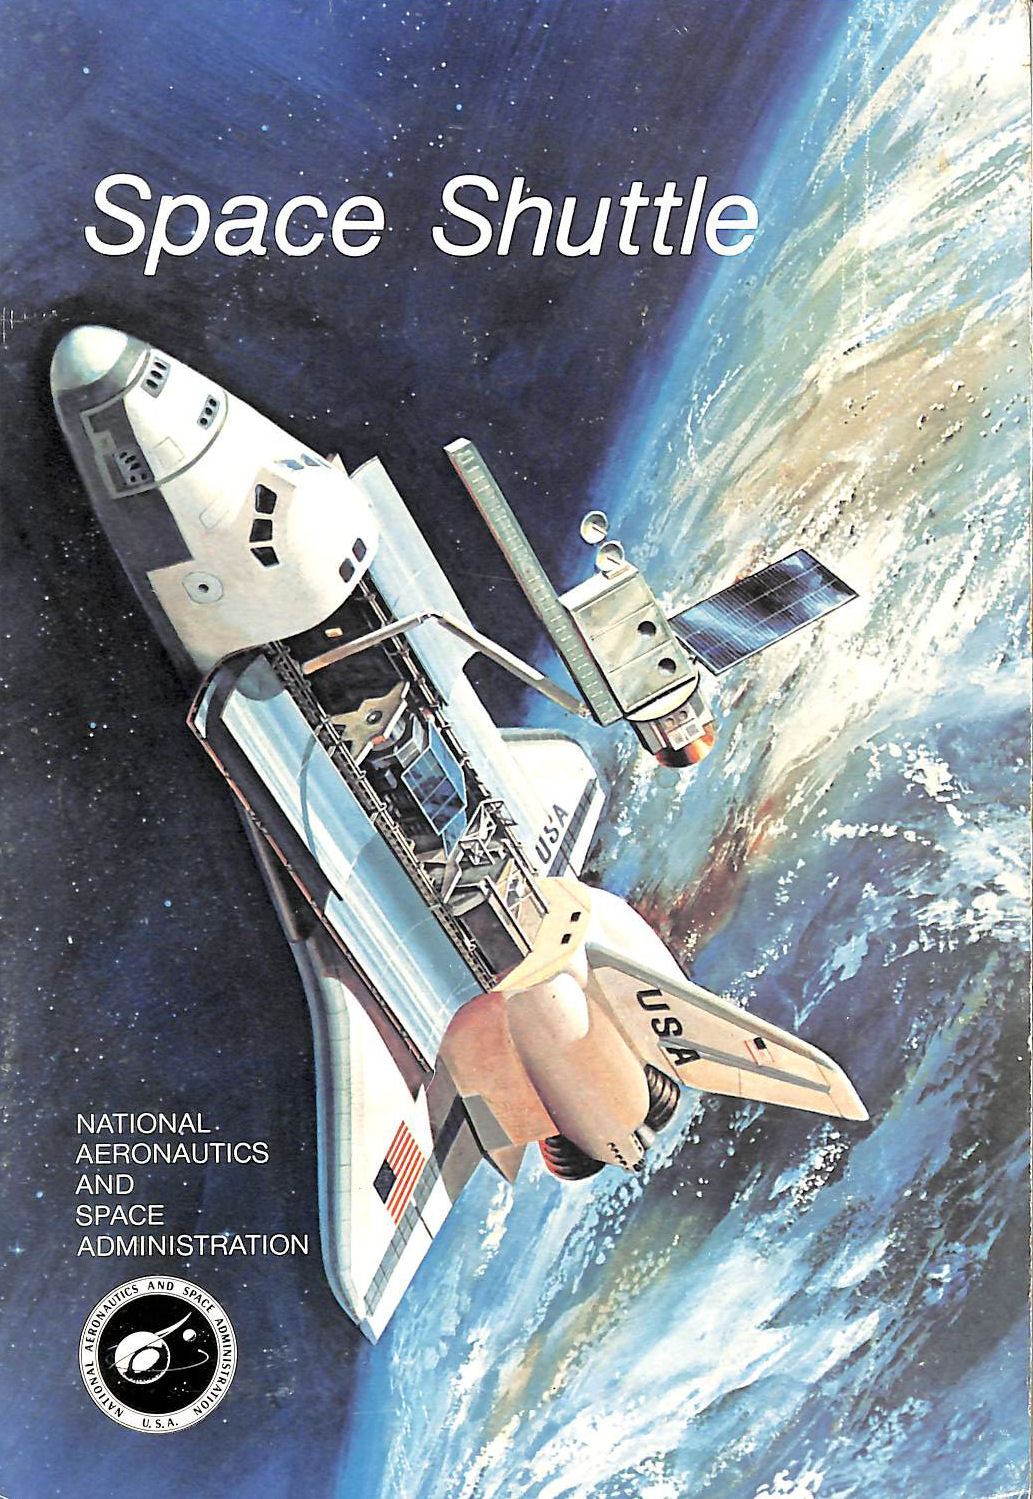 Image for Space Shuttle (Nasa Sp-407)